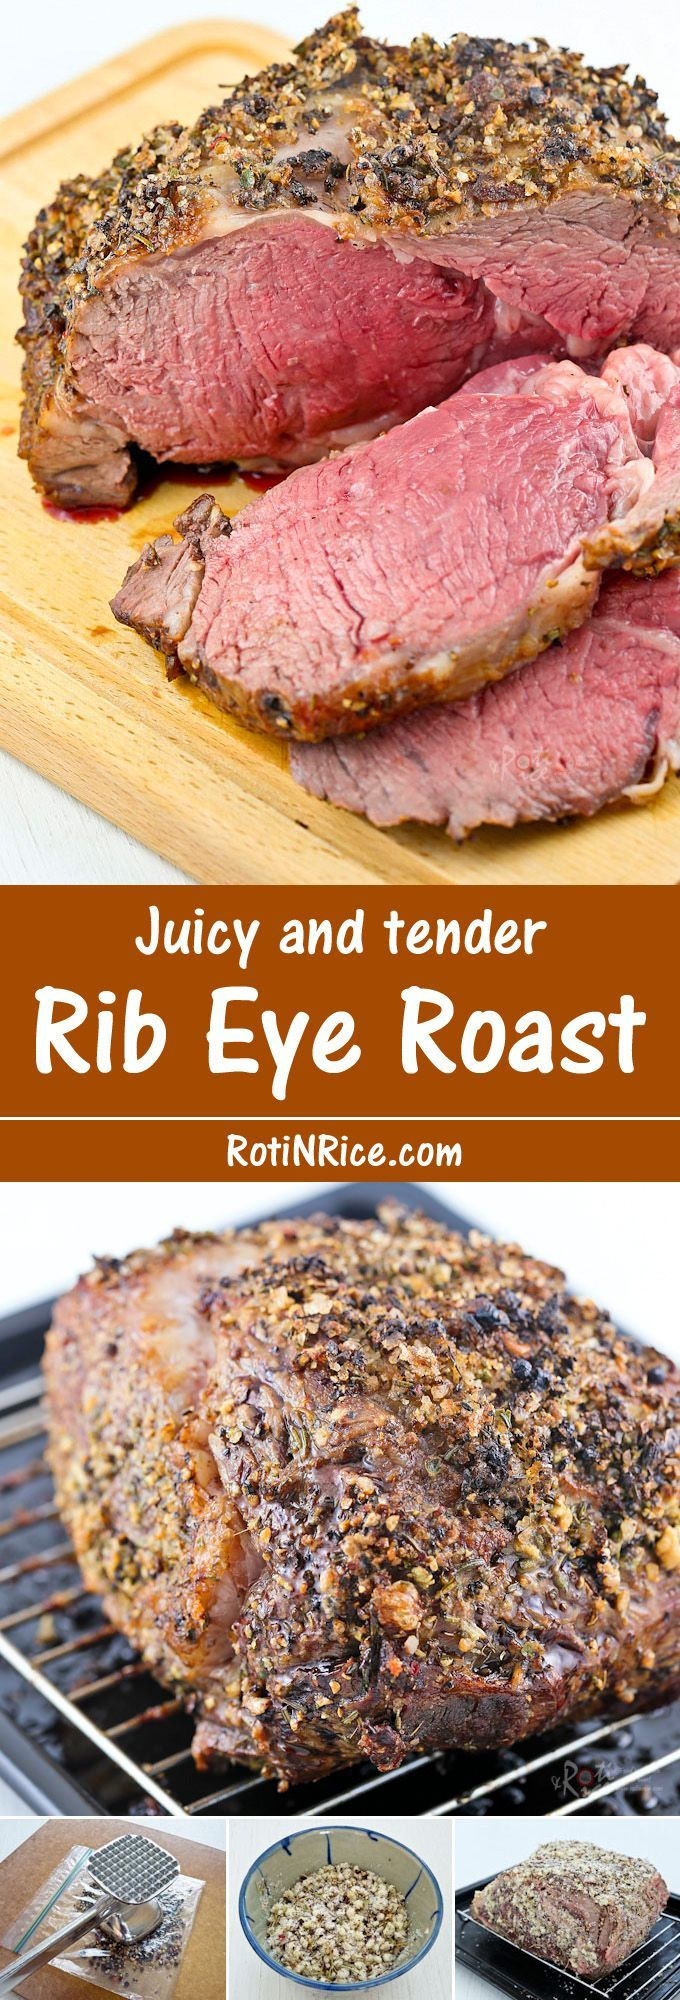 A tender and delicious Rib Eye Roast flavored with tri-color pepper, kosher salt, rosemary, thyme, and garlic for that special occasion. | Food to gladden the heart at RotiNRice.com. Too rare for me, cook a little longer.